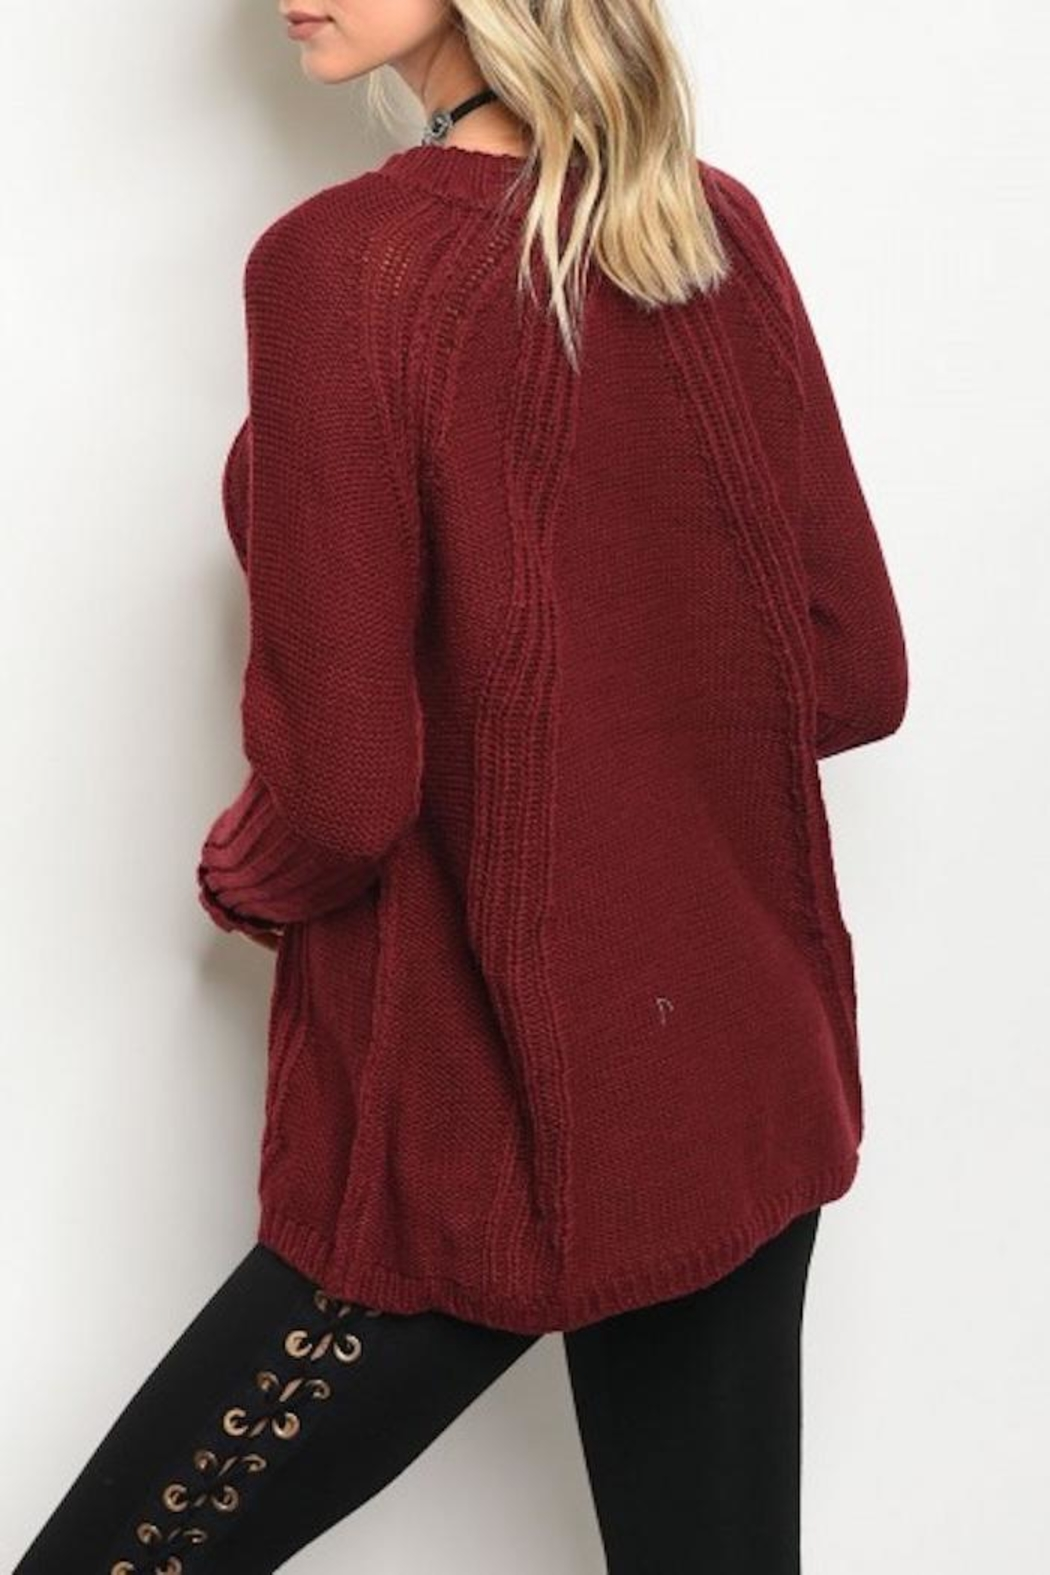 LoveRiche Zipper Accent Sweater - Front Full Image